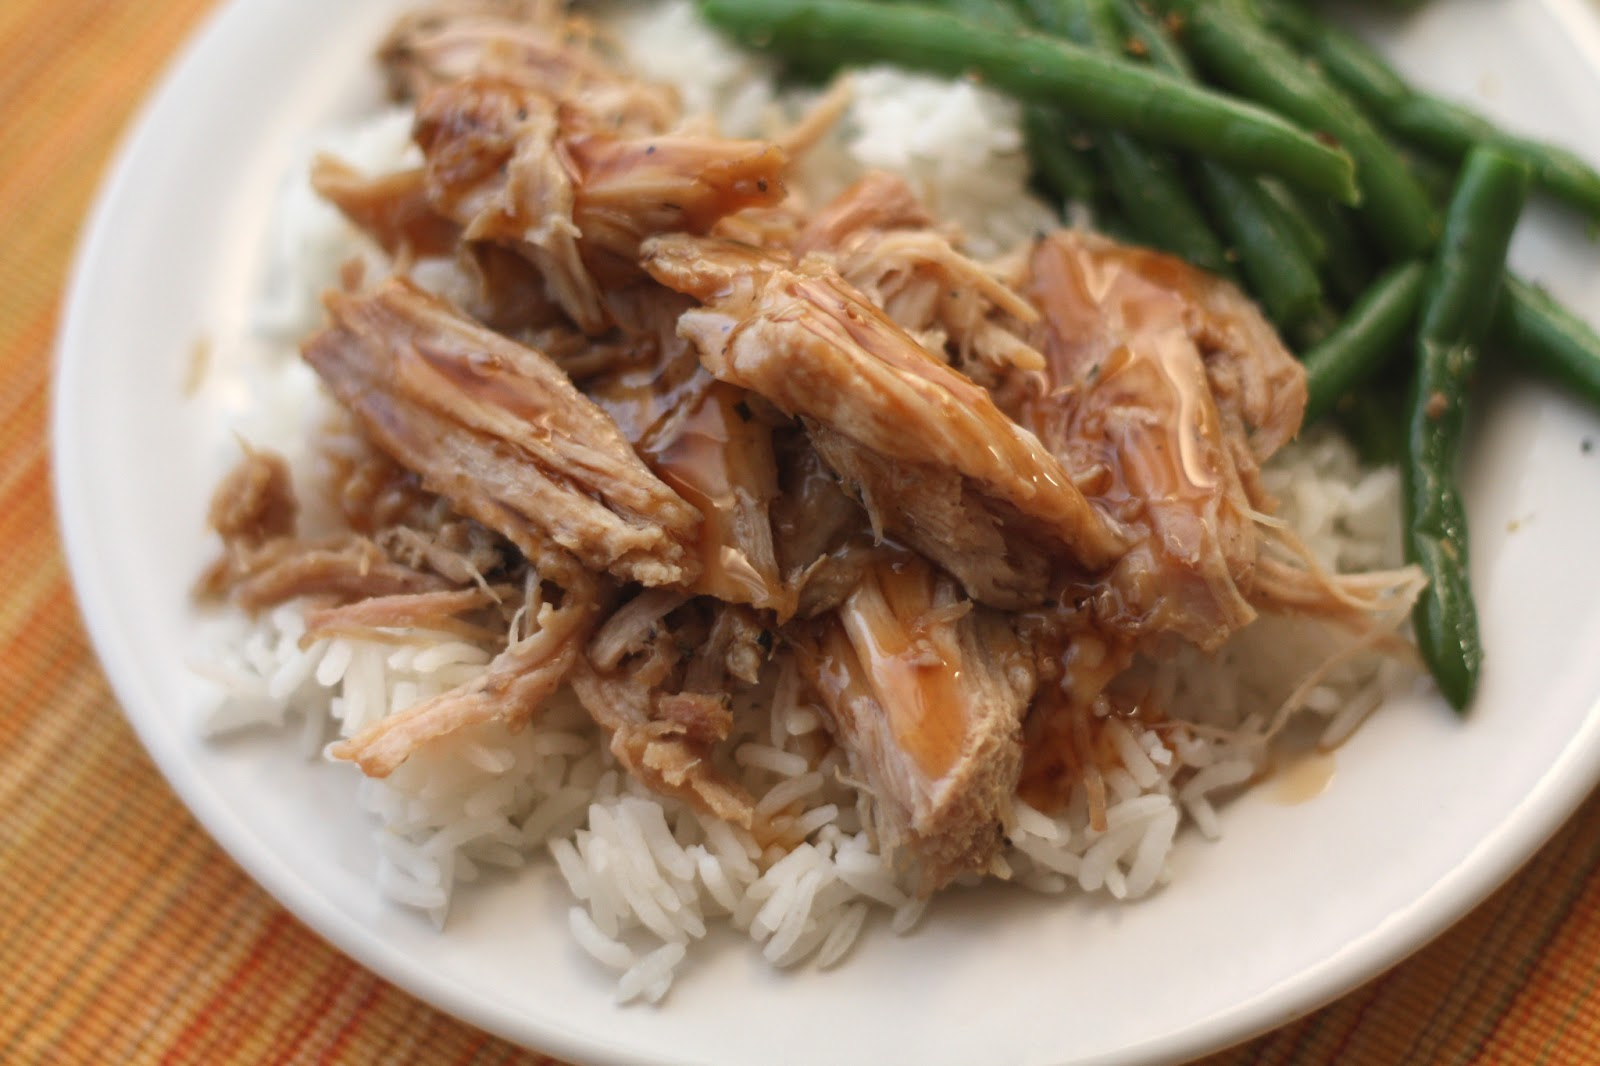 Slow Cooked Boneless Pork Roast In Oven